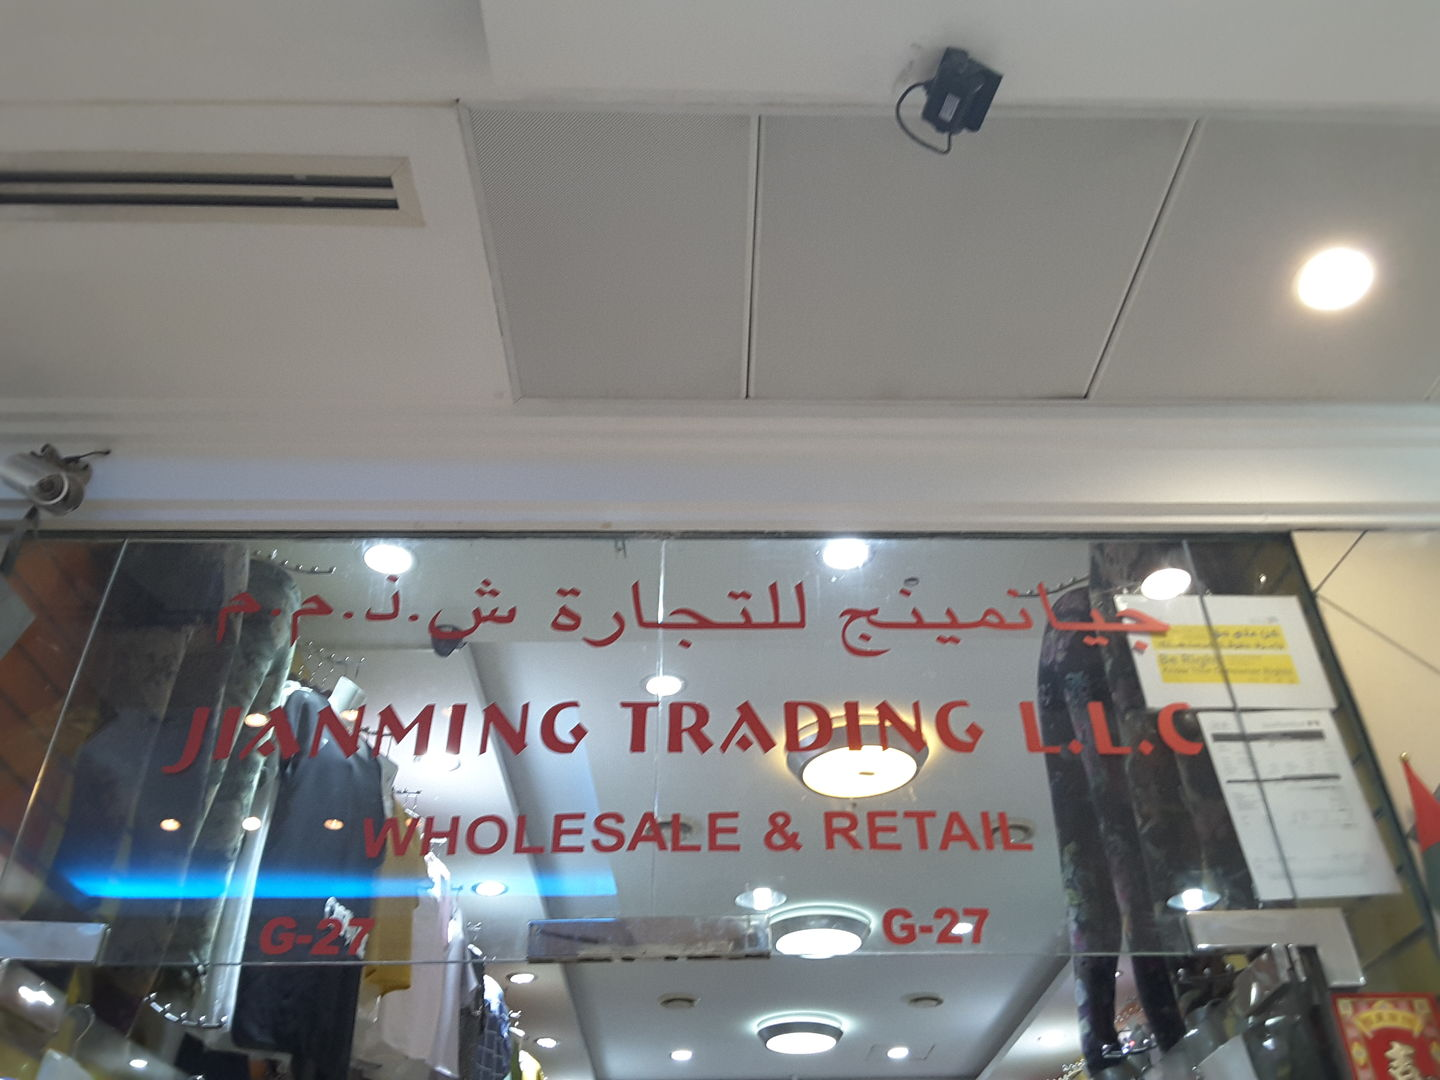 HiDubai-business-jianming-trading-shopping-apparel-baniyas-square-dubai-2